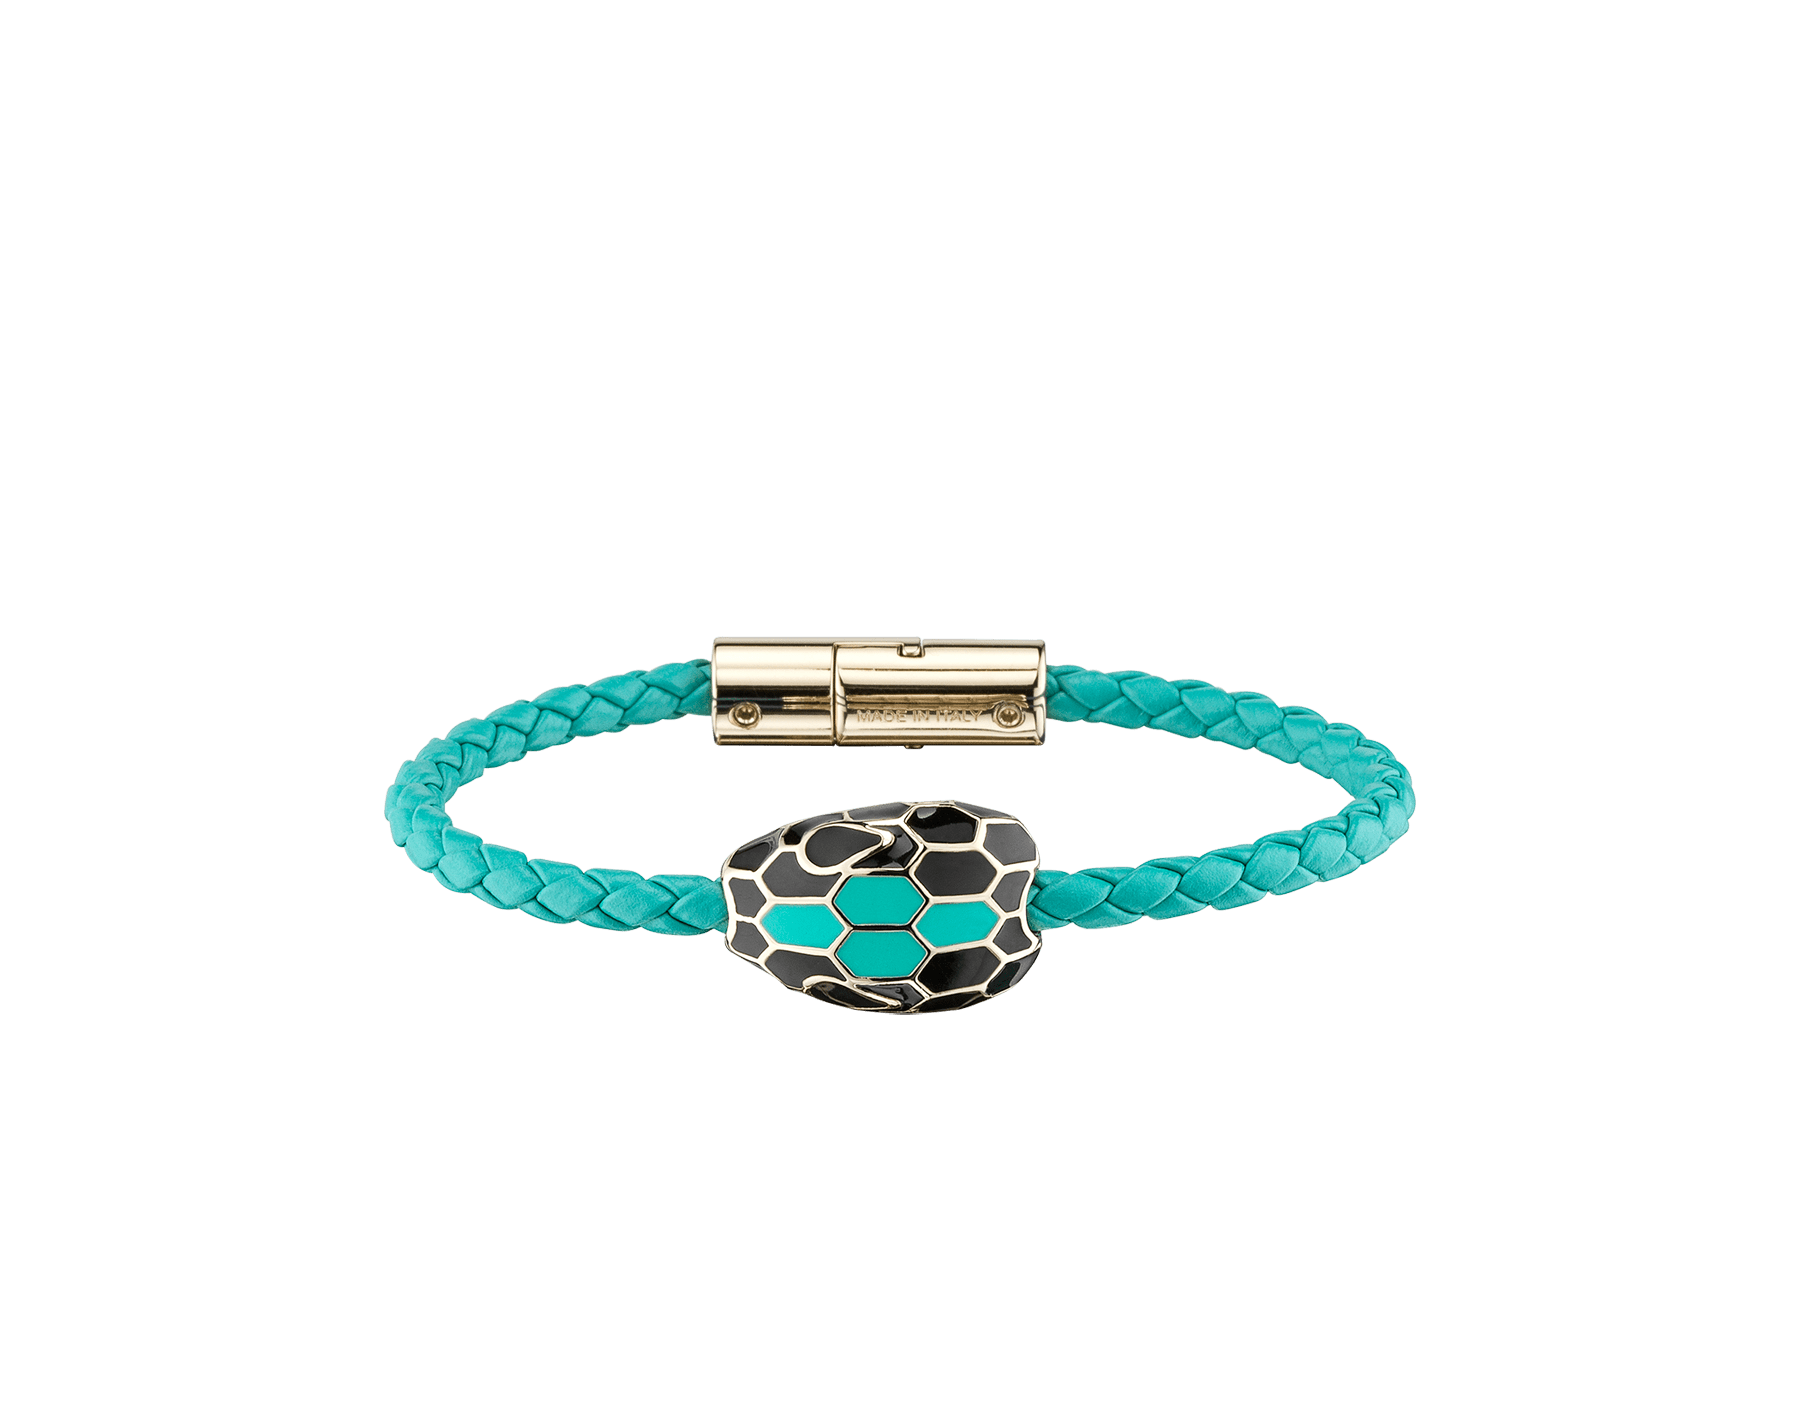 Serpenti Forever braid bracelet in arctic jade woven calf leather with an iconic snakehead décor in black and arctic jade enamel. SerpBraid-WCL-AJ image 1